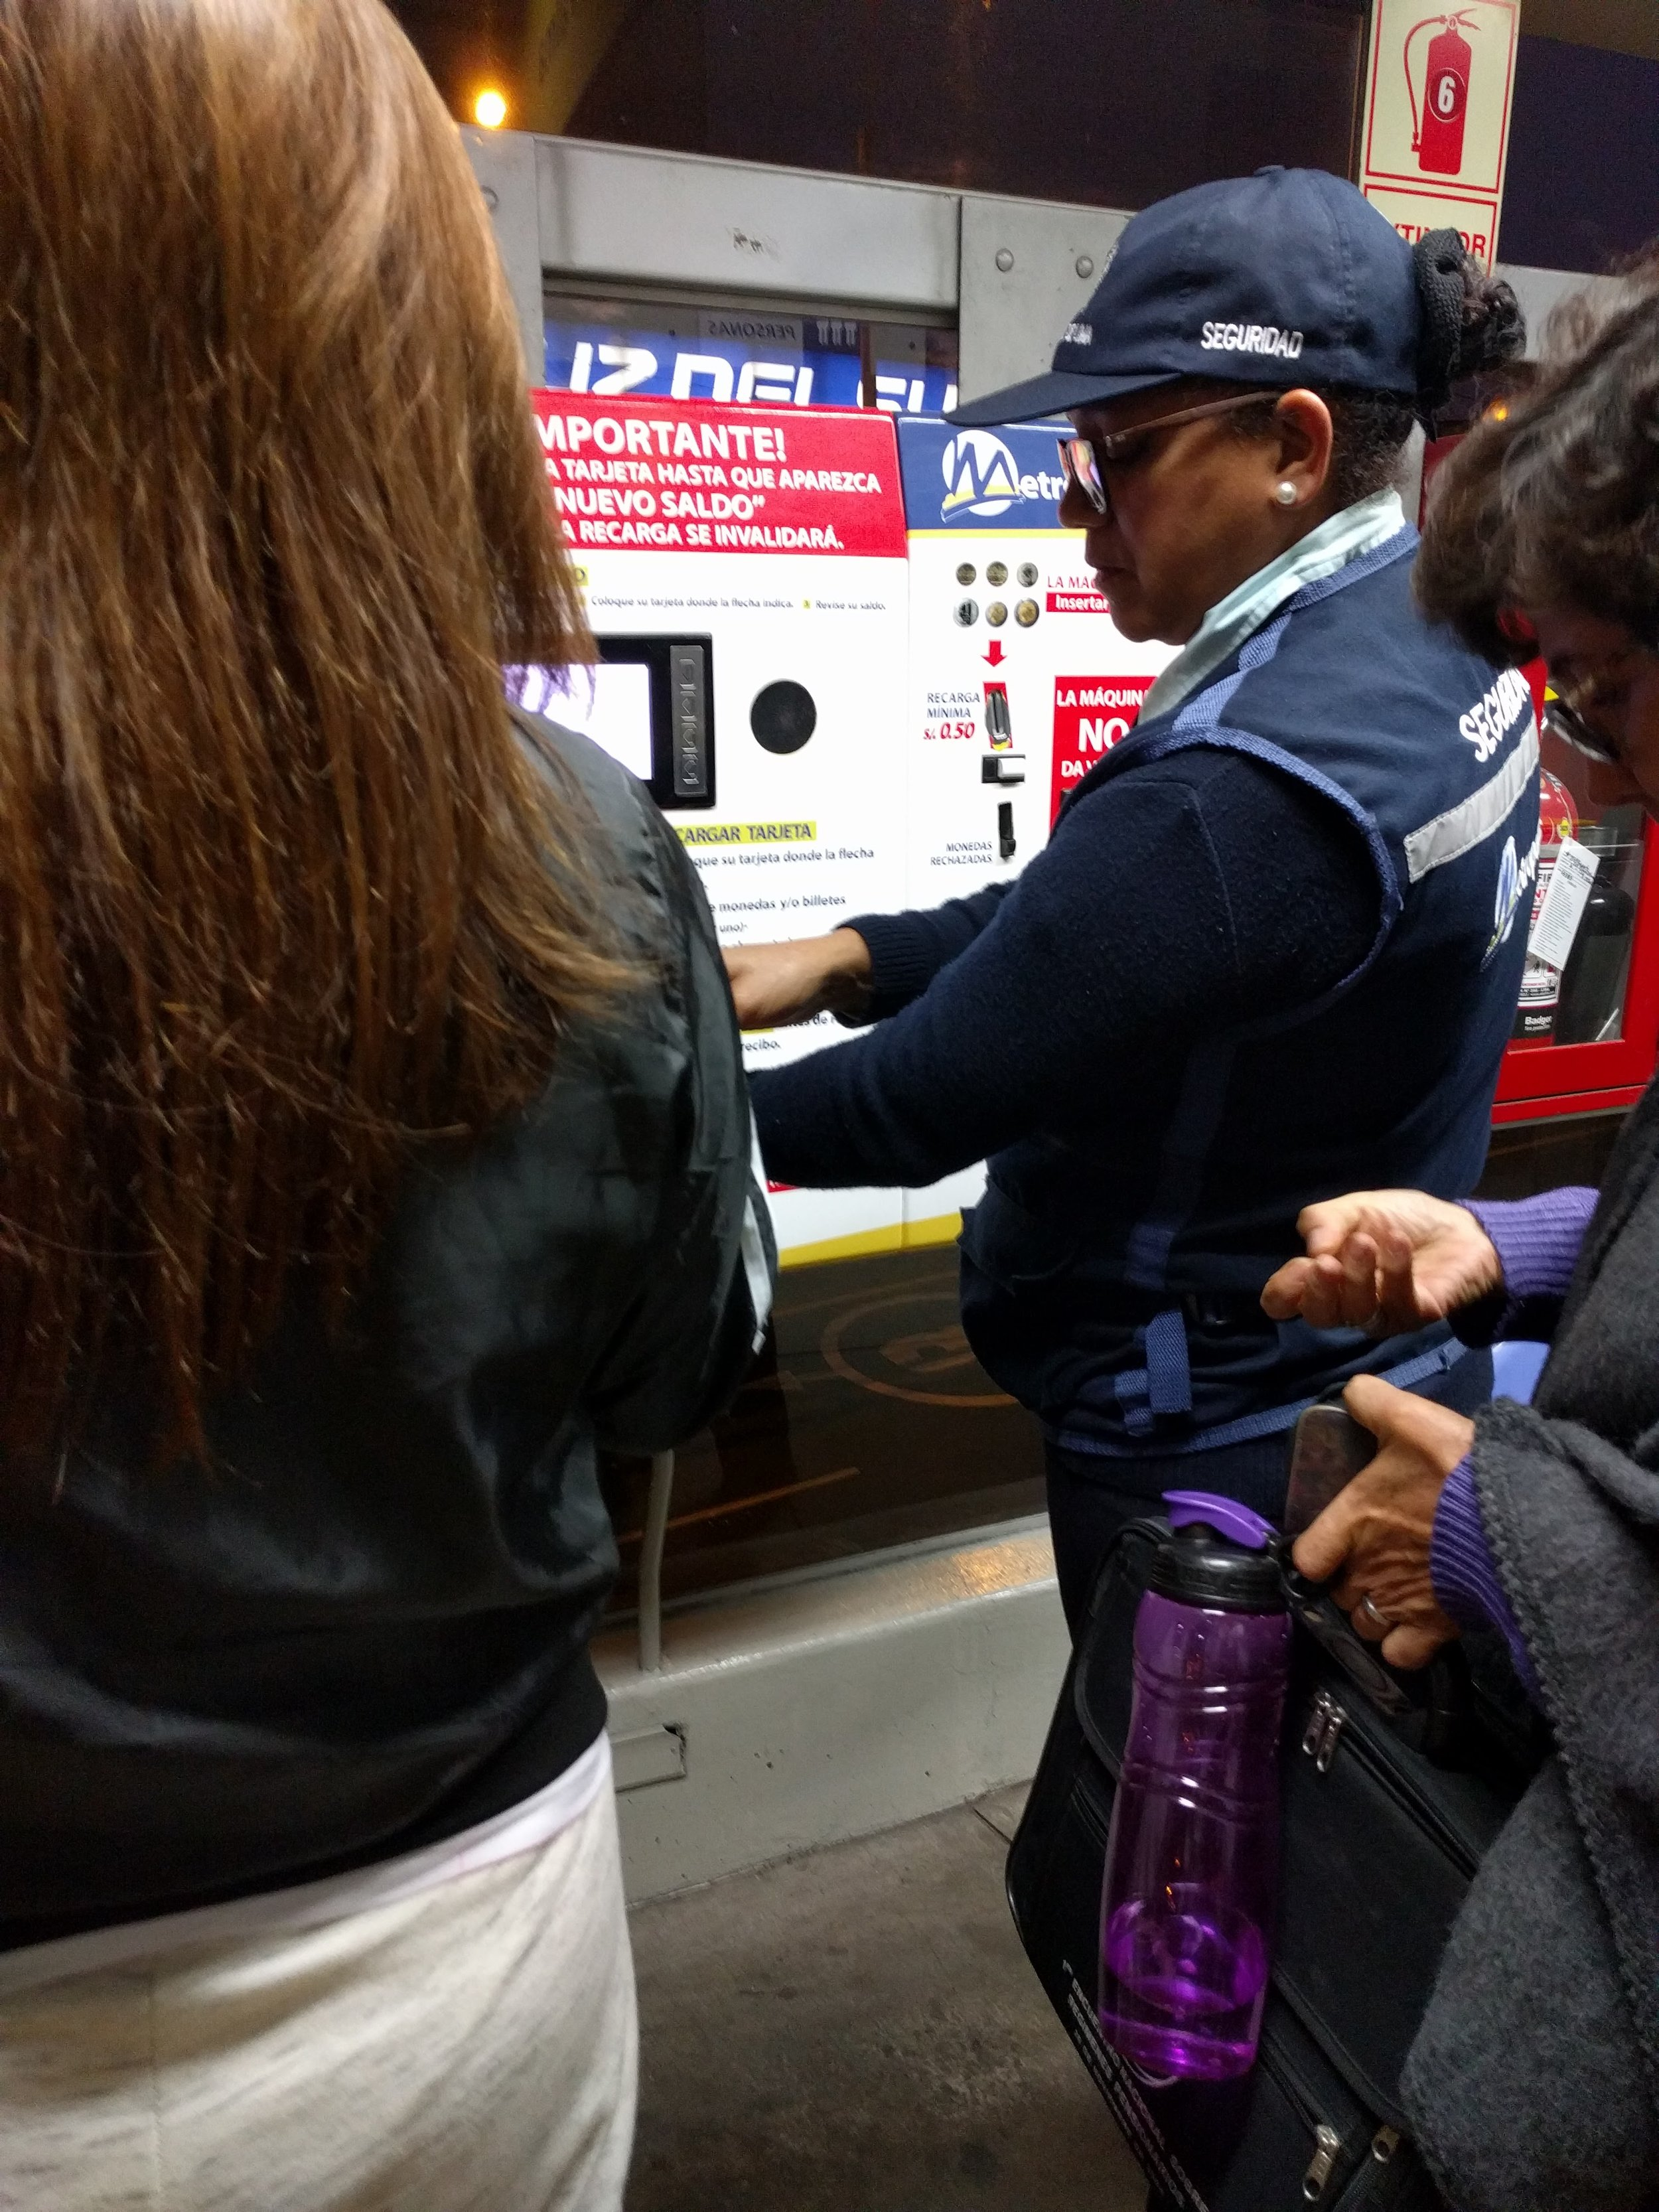 Confusion at the machine to top-up bus cards...